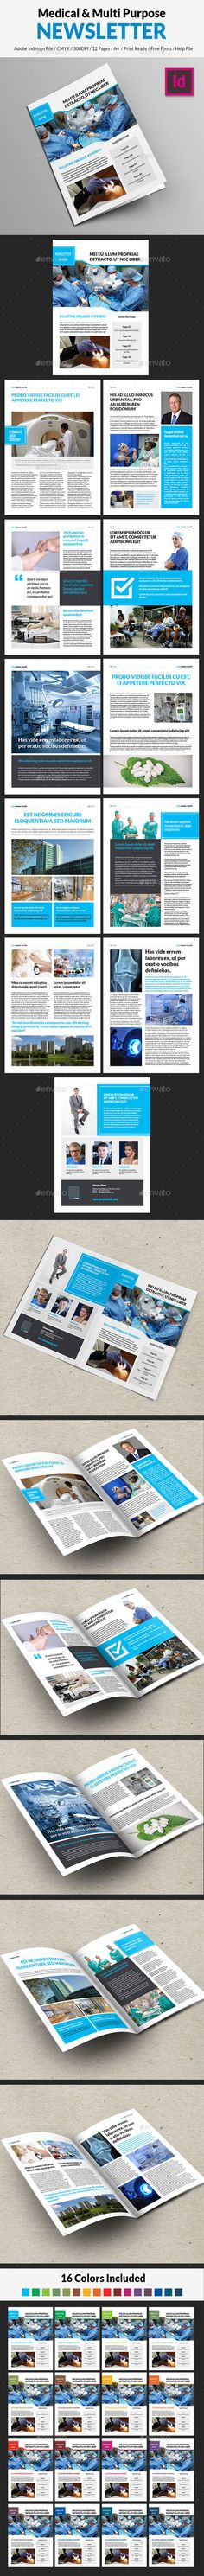 Newsletter Ideas Revealed Newsletter ideas and Newsletter templates - sample business newsletter